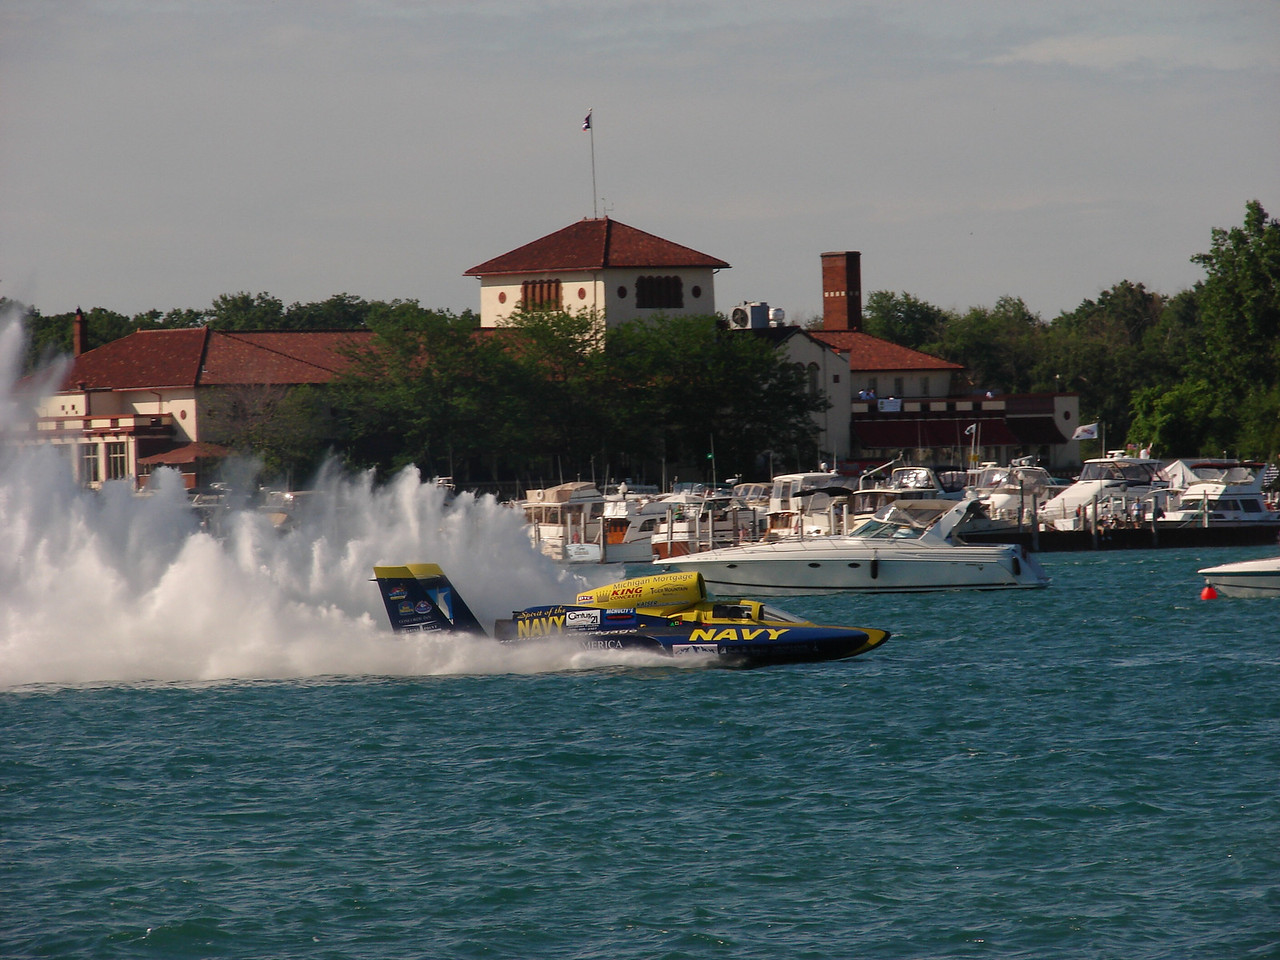 The foreground boat, sponsored by the Navy, was probably traveling 150-155 mph when the photo was taken. In the middle ground is Detroit Power Squadron's P/C Mitch Gawrysiak's 44 Formula, a course judging and rescue boat. There were at least six or seven other DPS members. There were at least 5 other Detroit members boat working the course also. In the back ground, the Detroit Yacht Club has been DPS's home since 1936.